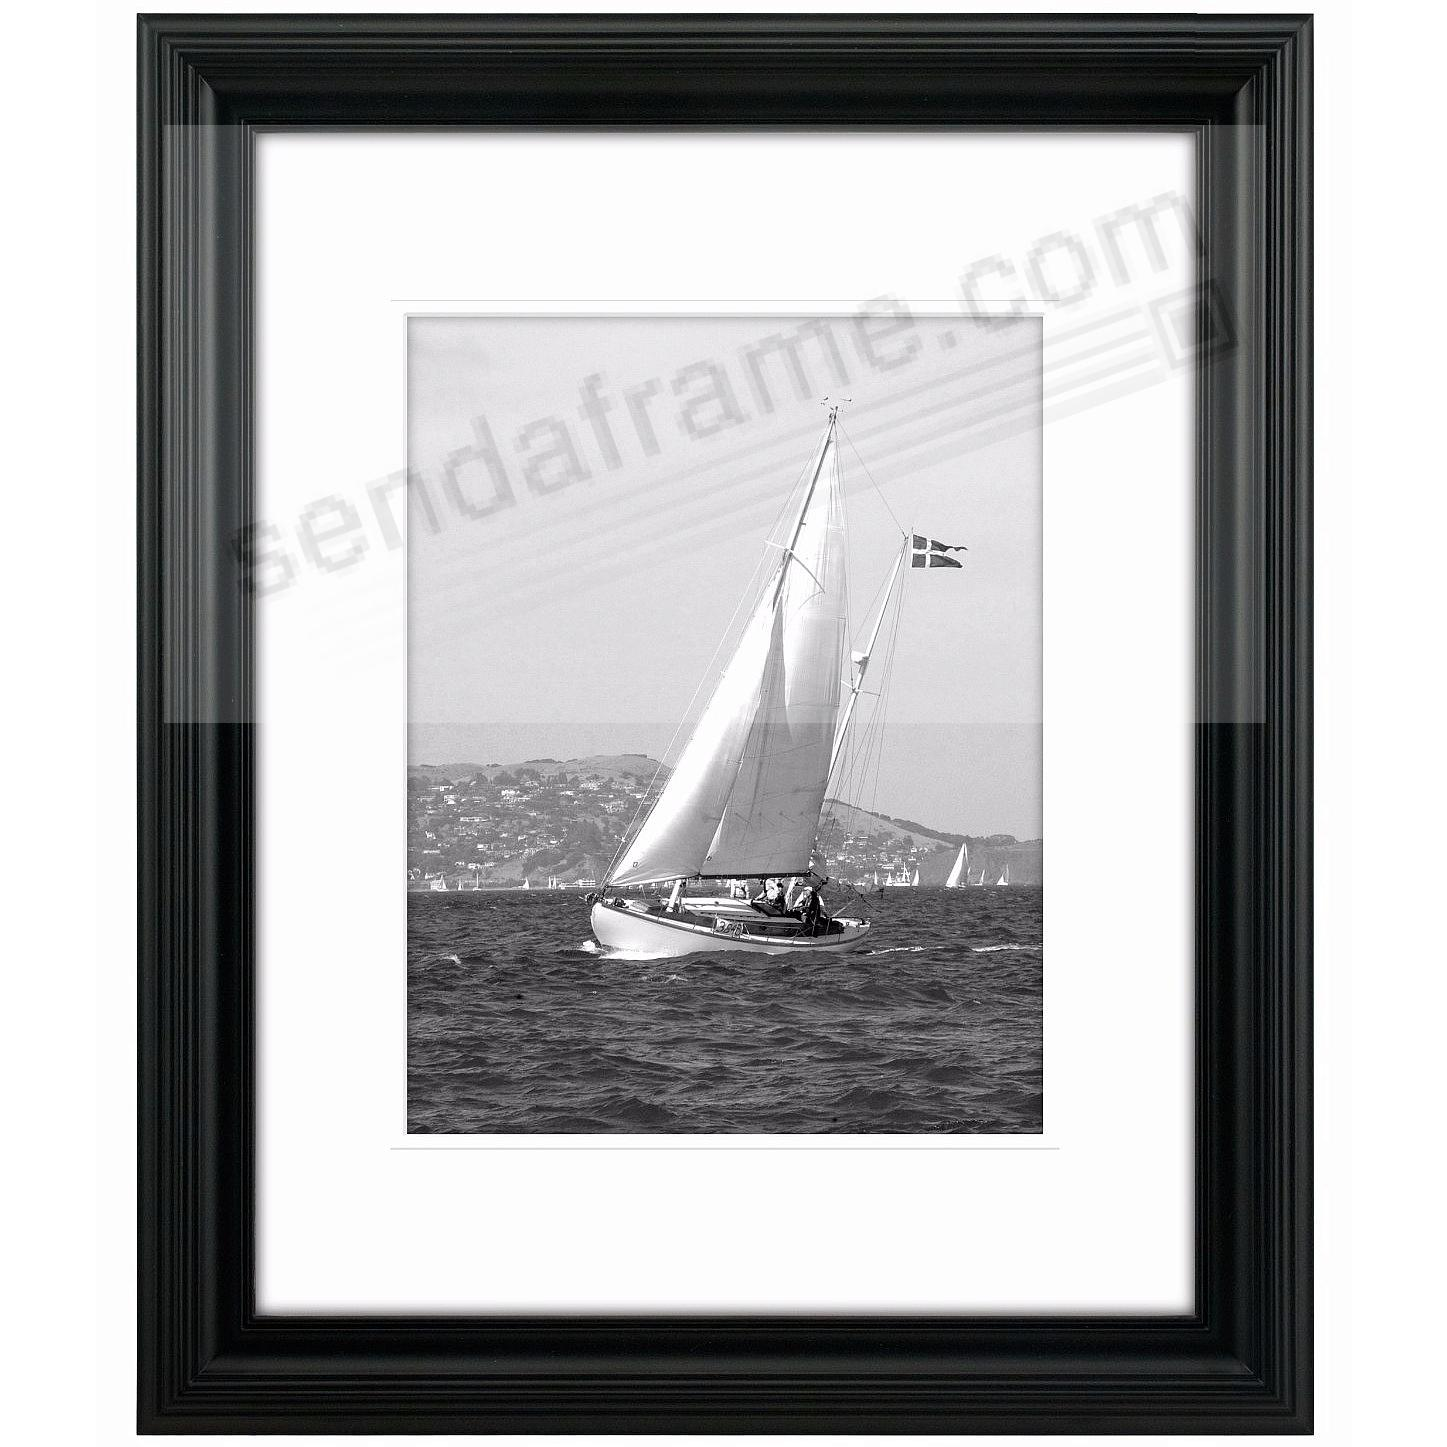 Black Portrait Matted 16x20 11x14 Stepped Frame By Malden